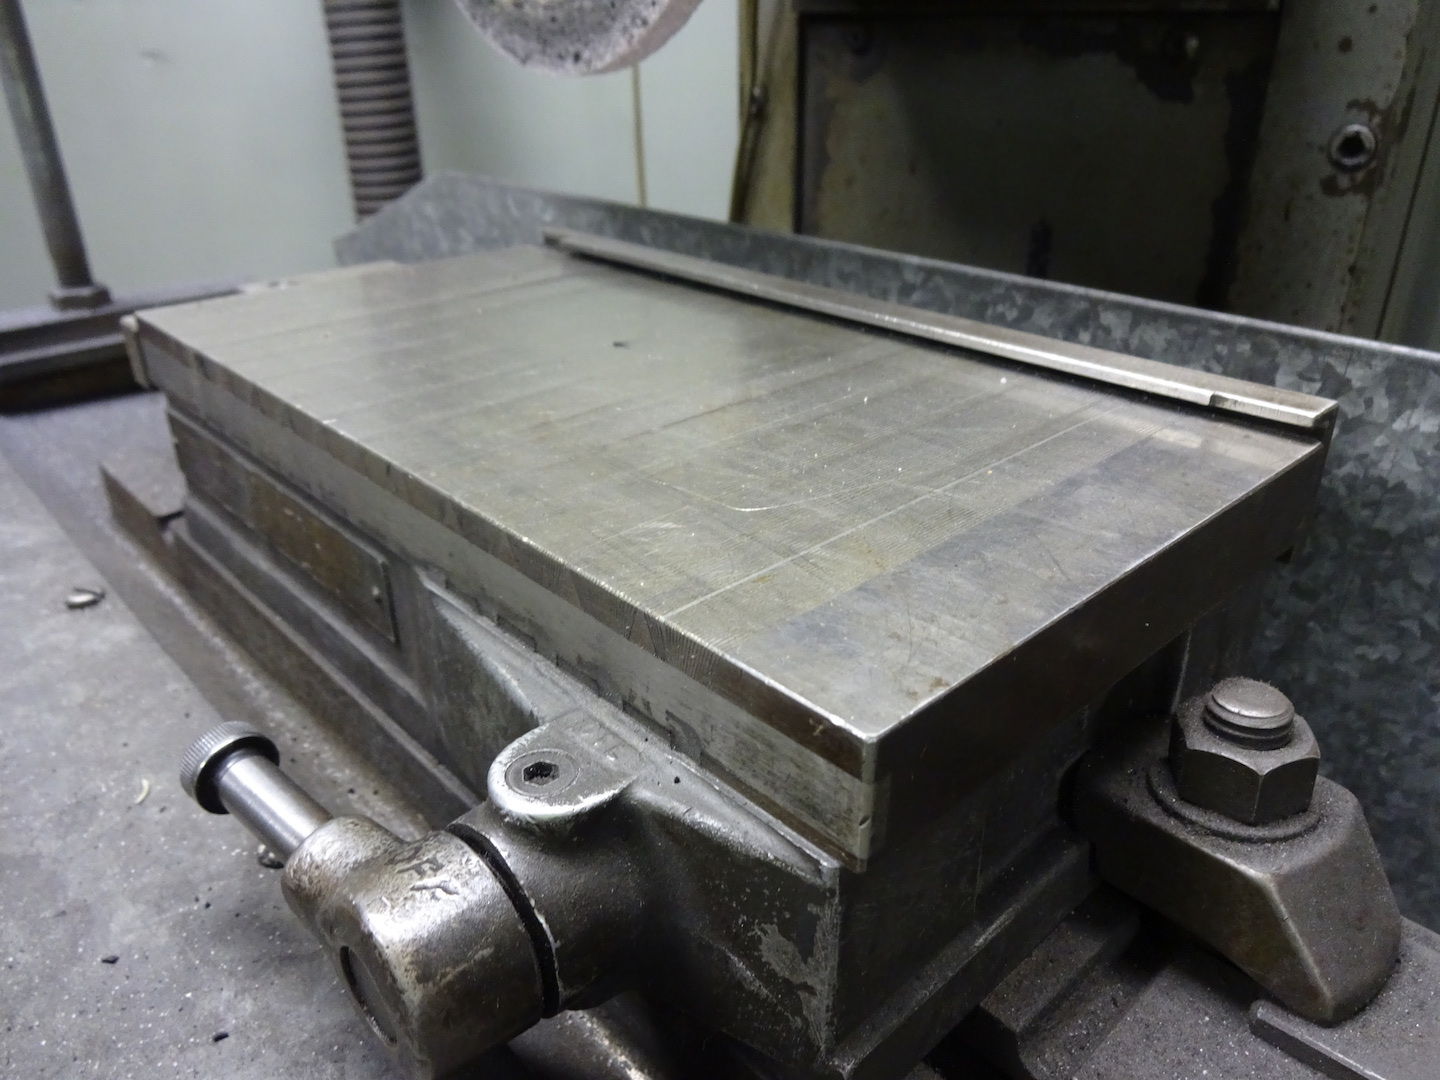 Lot 123 - Brown & Sharpe 5 in. x 10 in. Model 510 Hand Feed Surface Grinder, S/N 523-510-1238